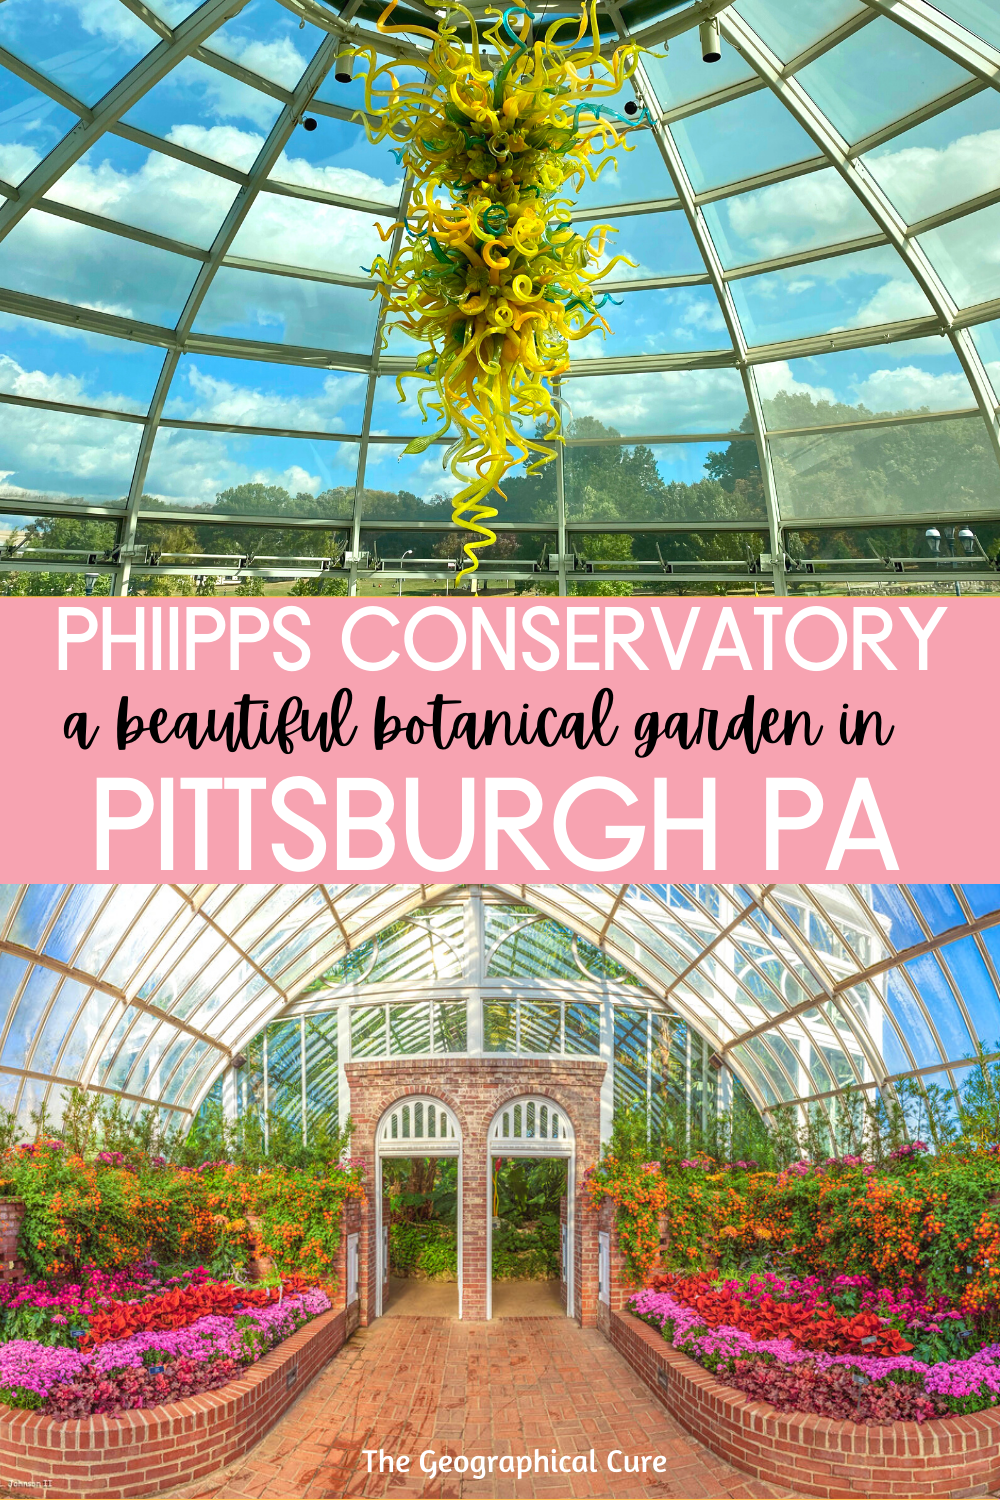 Phipps Conservatory: Beautiful Botanical Garden in Pittsburgh PA